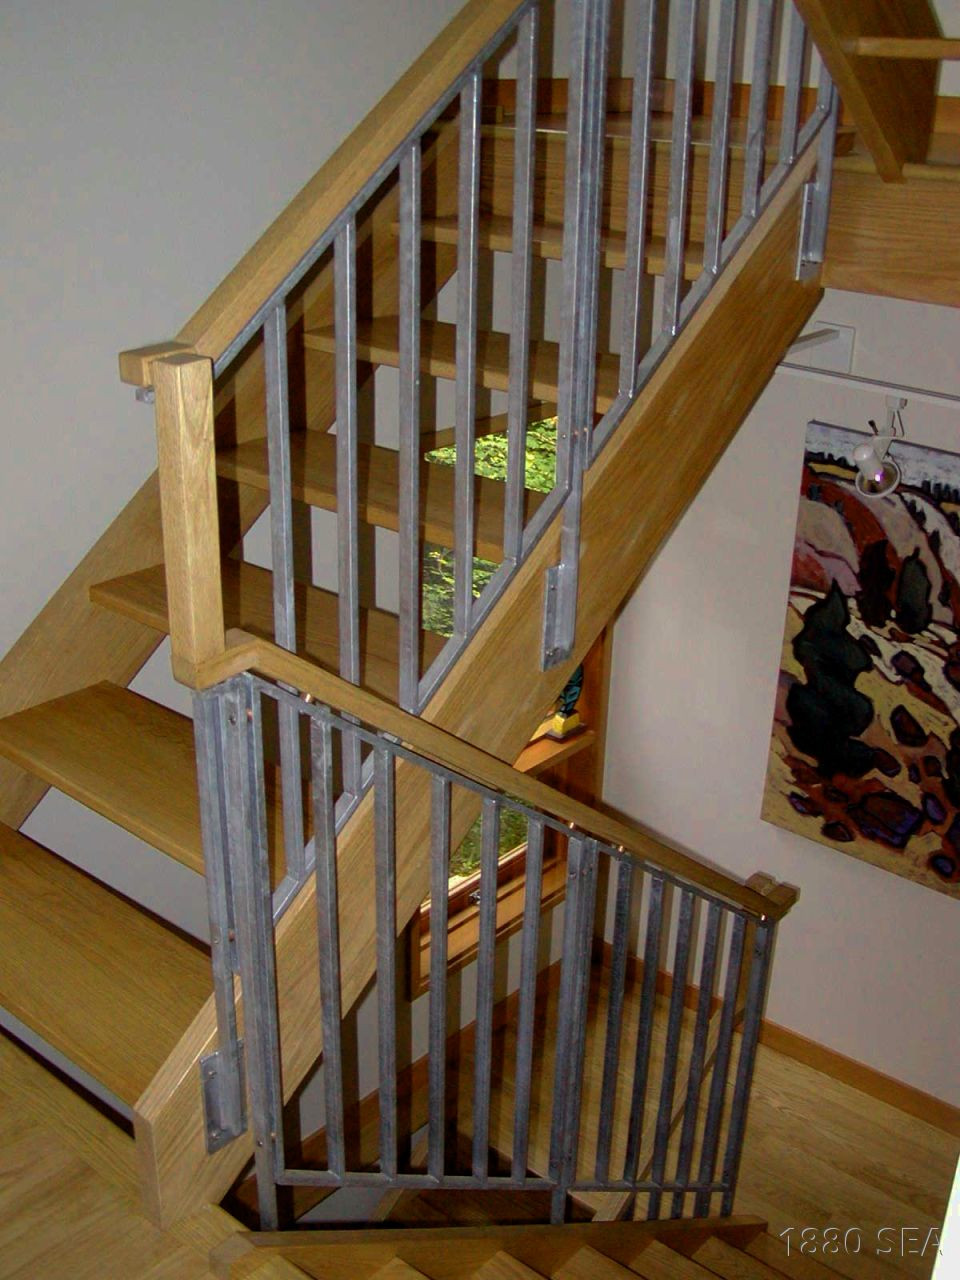 Best ideas about Indoor Stair Railings . Save or Pin Home Stair Railing Design talentneeds Now.